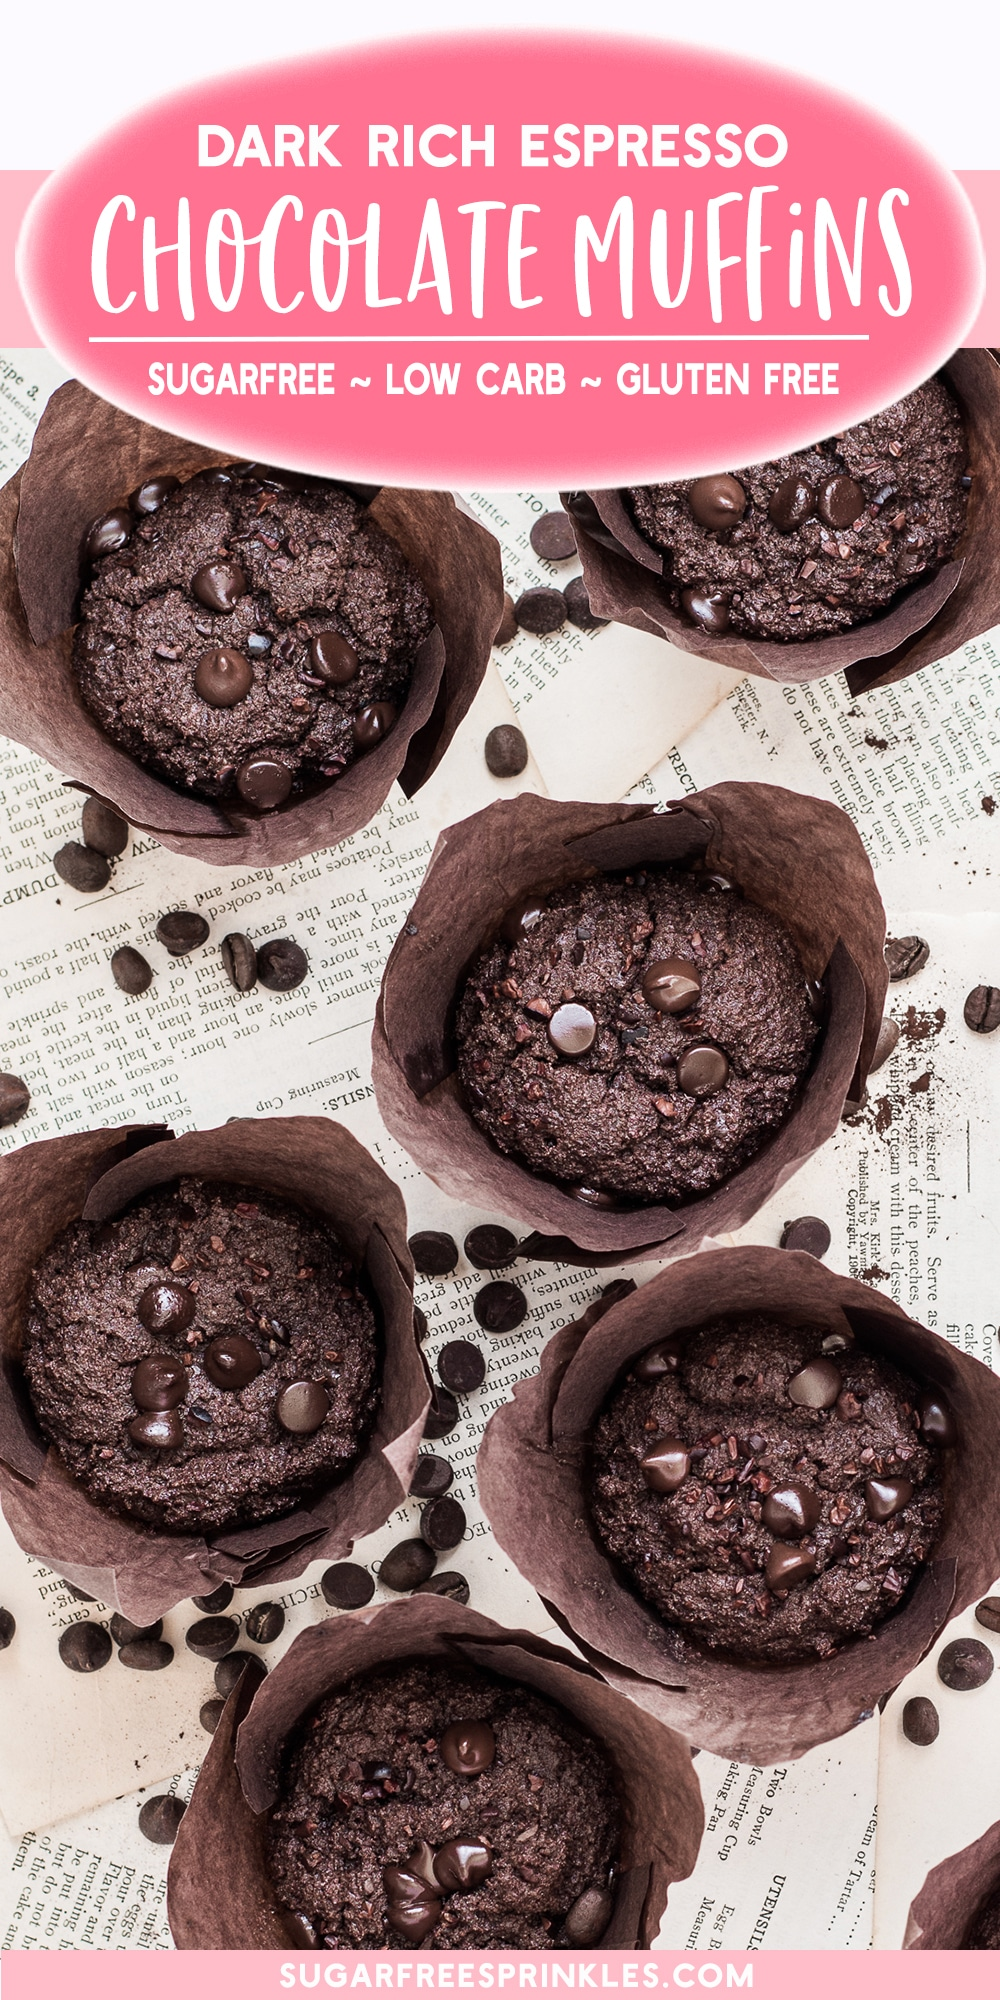 Epic triple chocolate muffins that are sugar-free, low carb, keto friendly and gluten free.  This low carb baking recipe makes for a great breakfast muffin.  Make them ahead of time and freeze them so you always have something for on the go or to crush that chocolate craving.